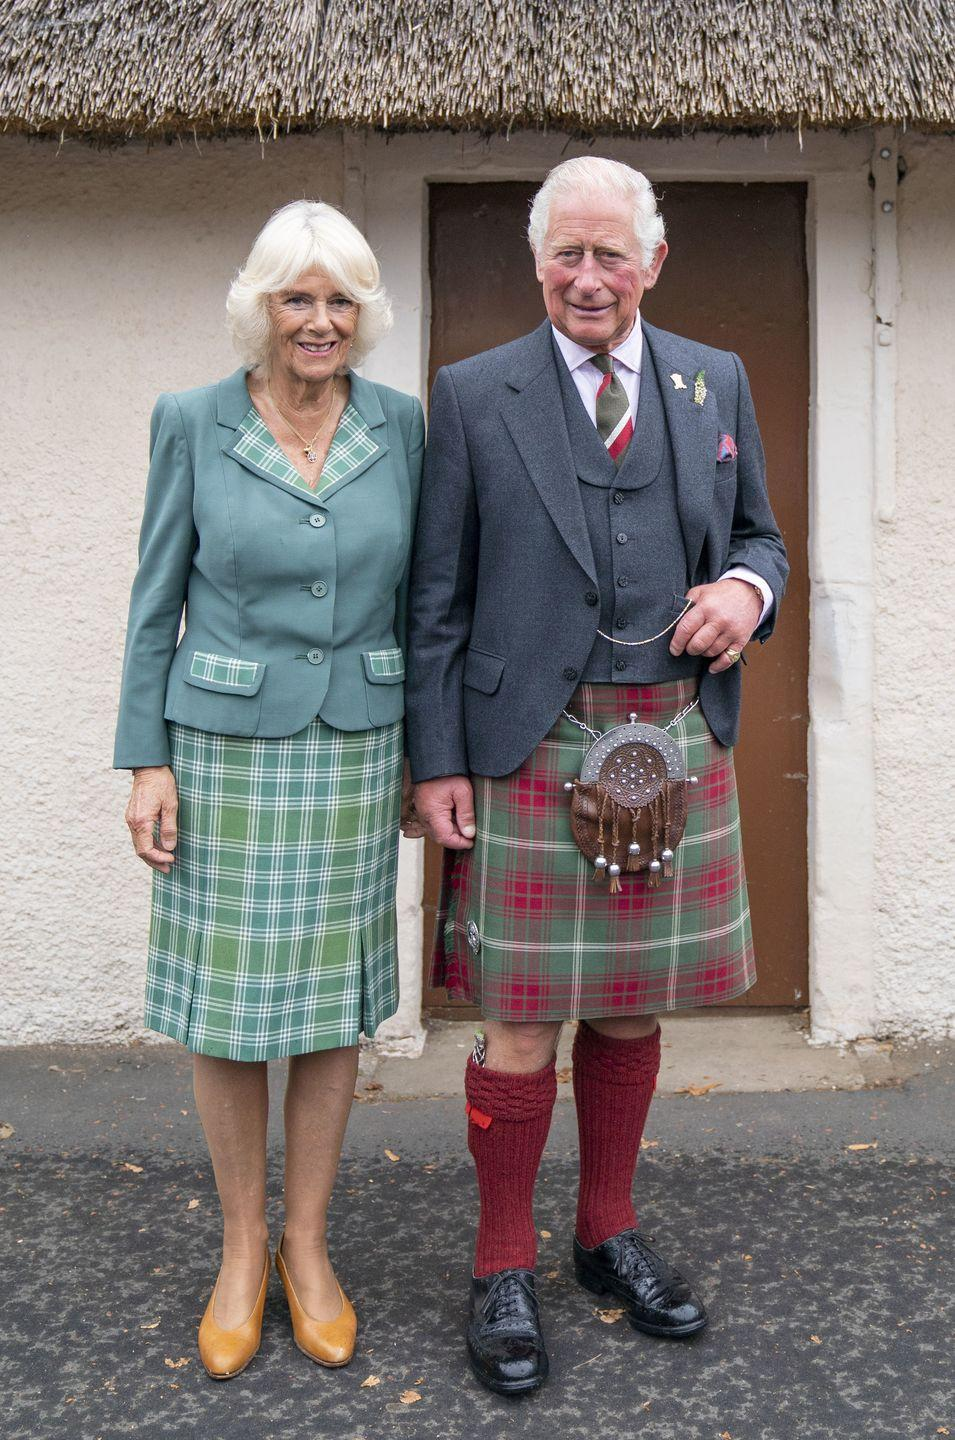 <p>You know what they say—couples that sport plaid together stay together. Prince Charles and Camilla, Duchess of Cornwall each opted for patterned ensembles for a recent outing in Scotland. </p>